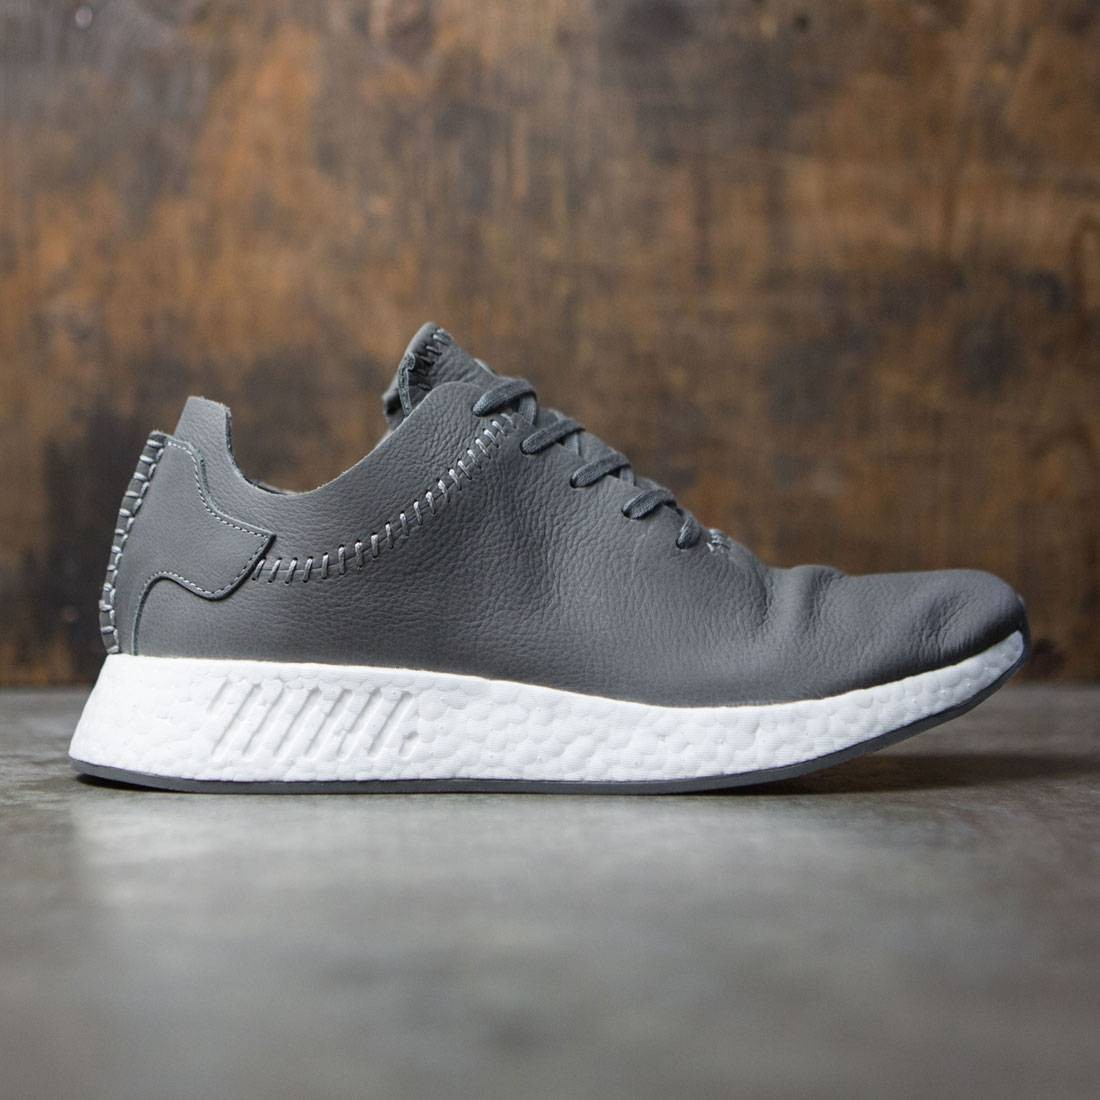 low priced a6216 7aa18 Adidas x Wings + Horns Men NMD R2 Leather (gray / ash / off white)